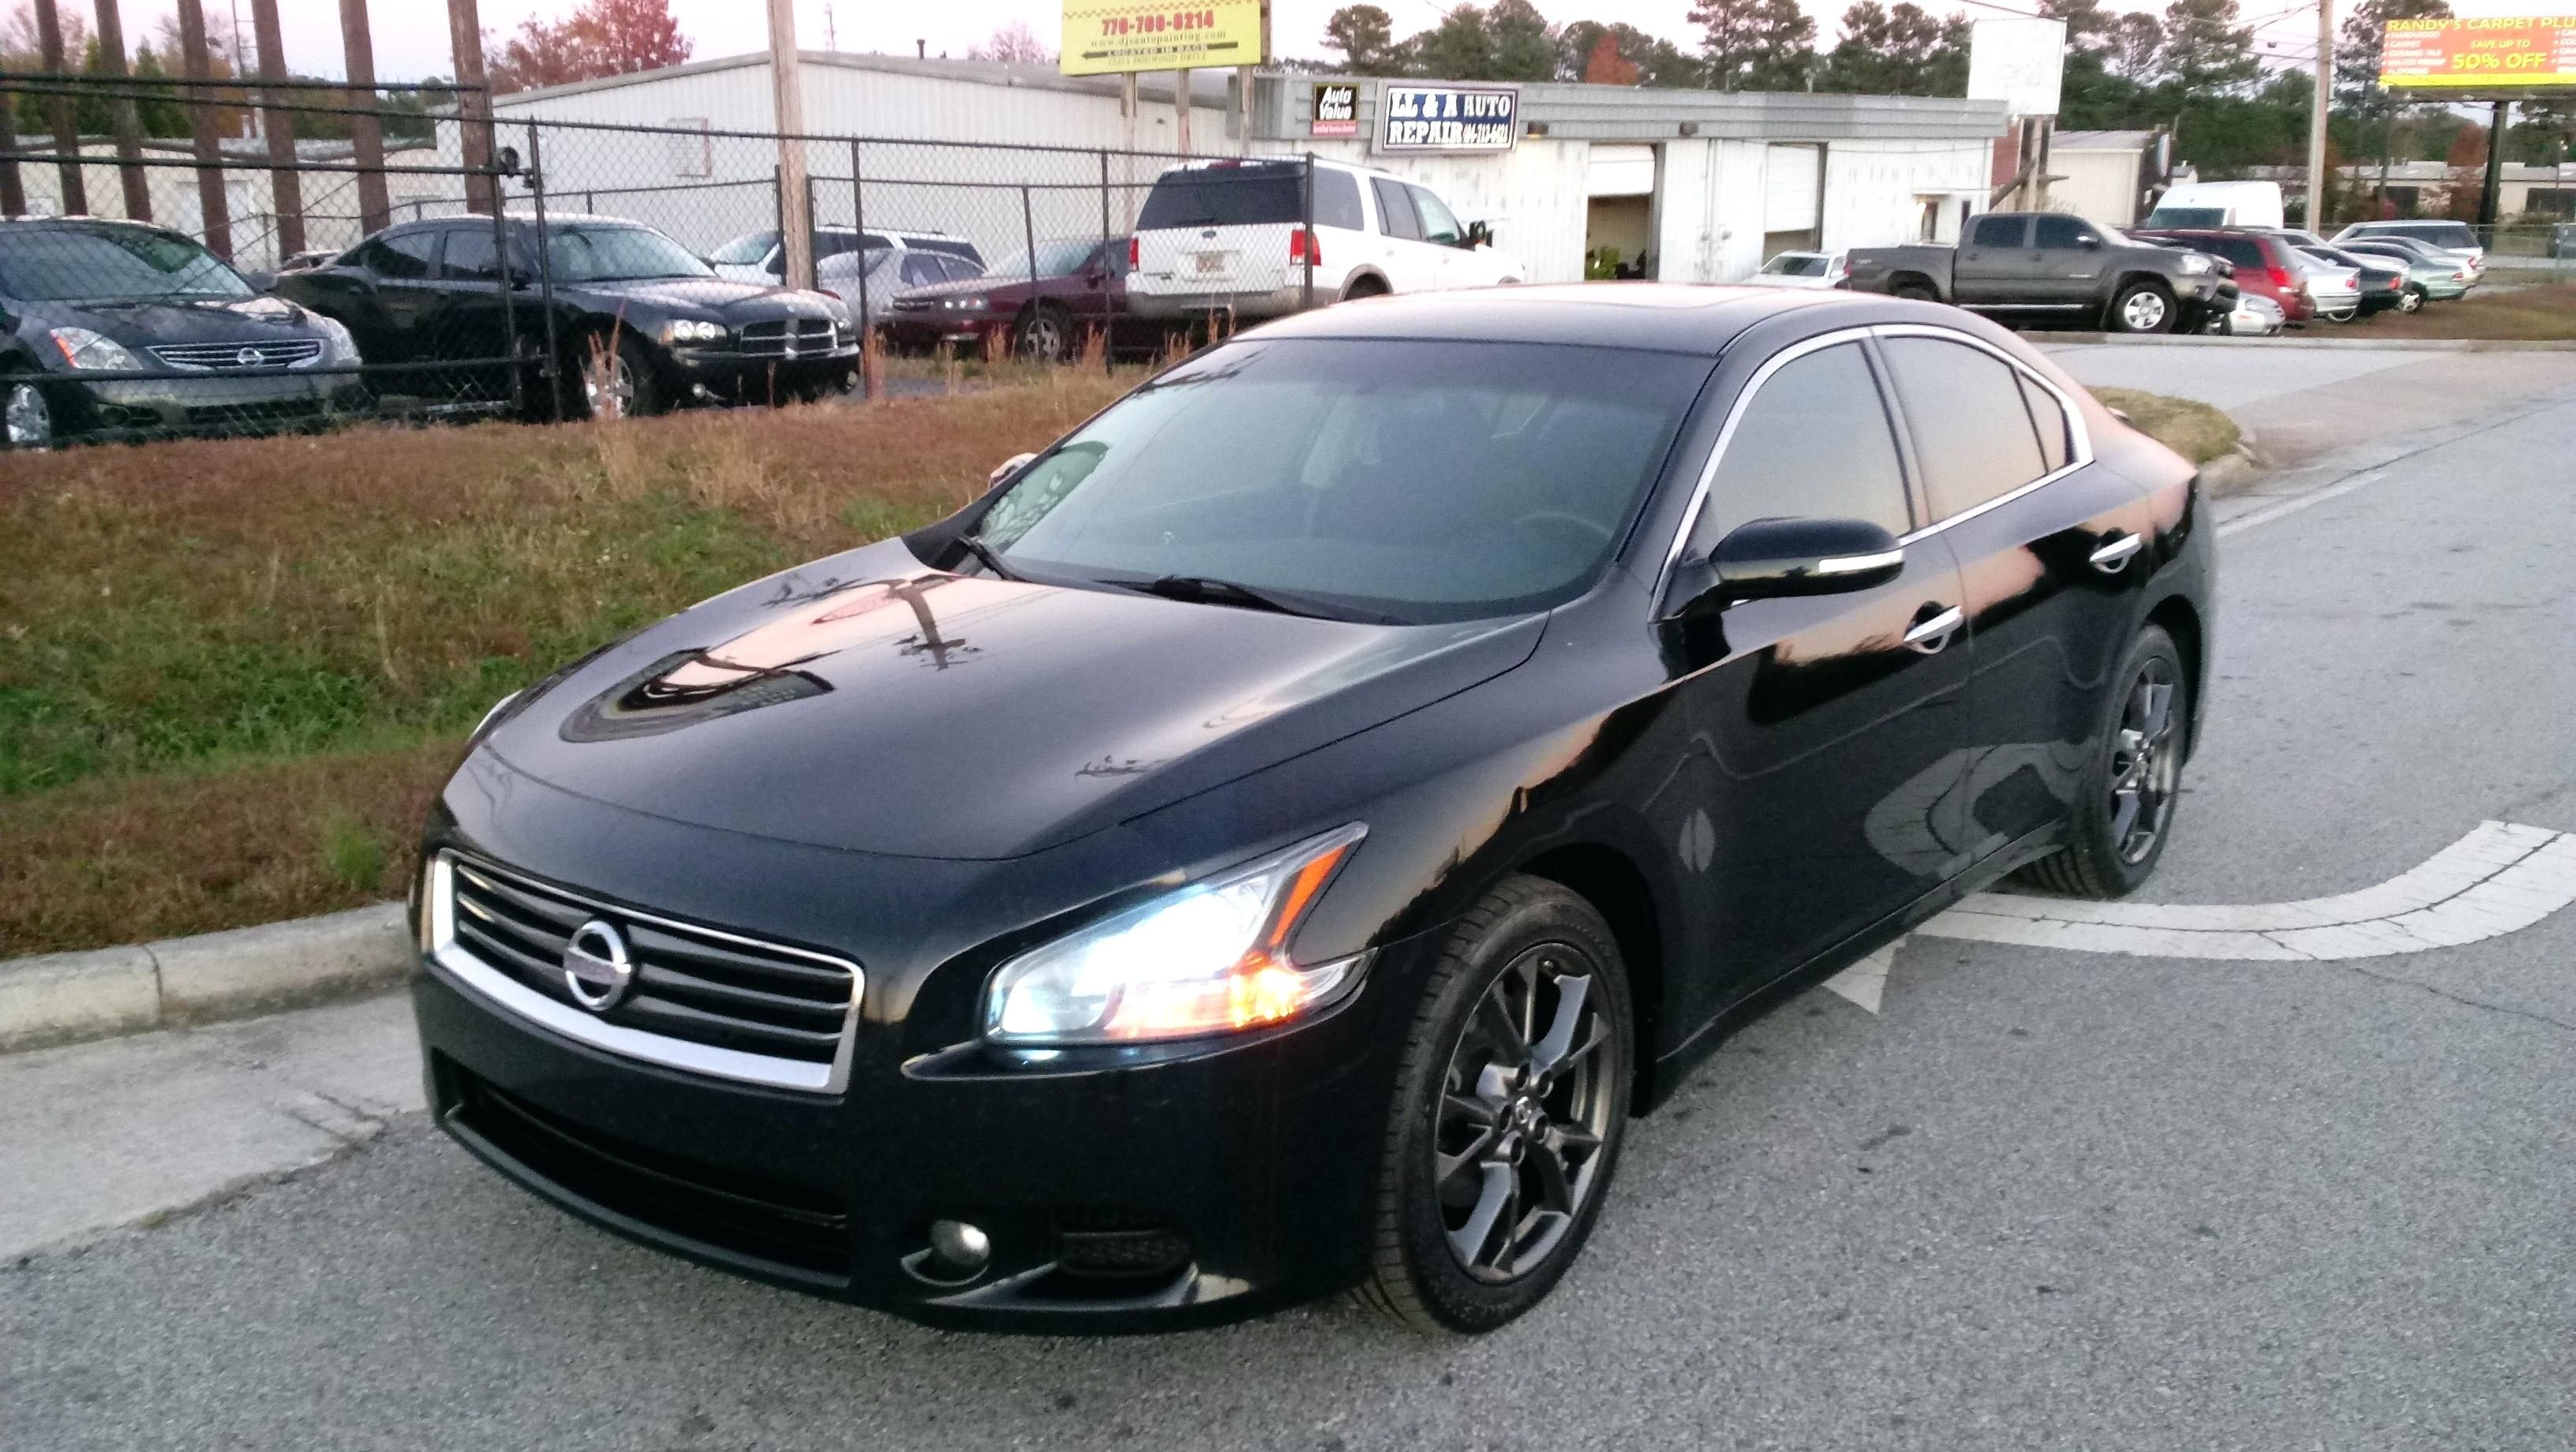 New Cars for Sale Near Me Under 100